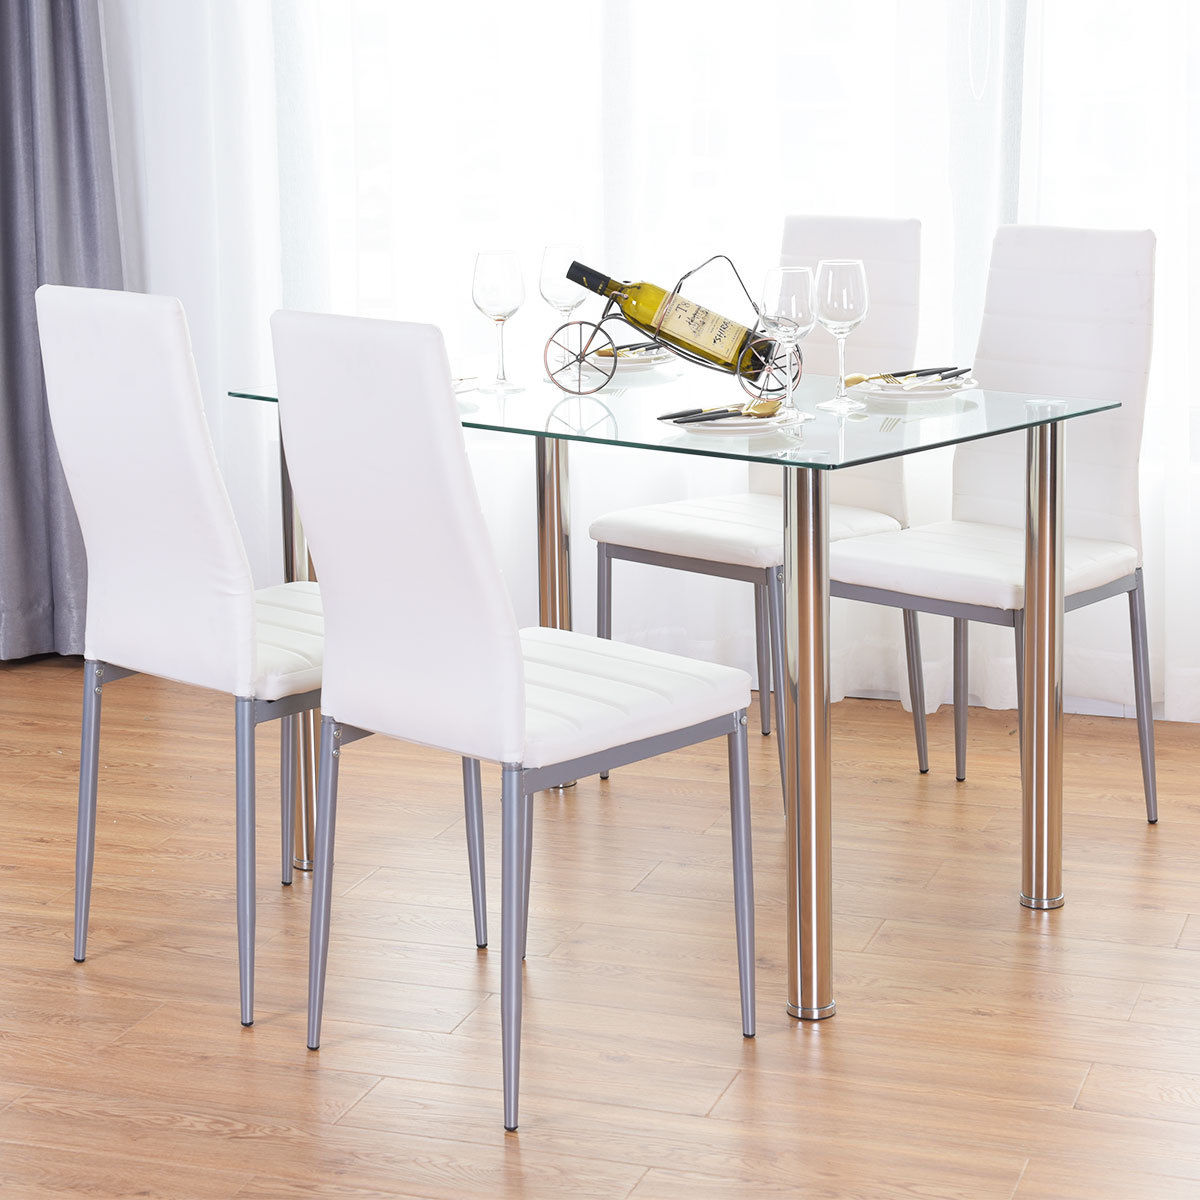 Costway 5 Piece Dining Set Table and 4 Chairs Glass Metal Kitchen Breakfast Furniture